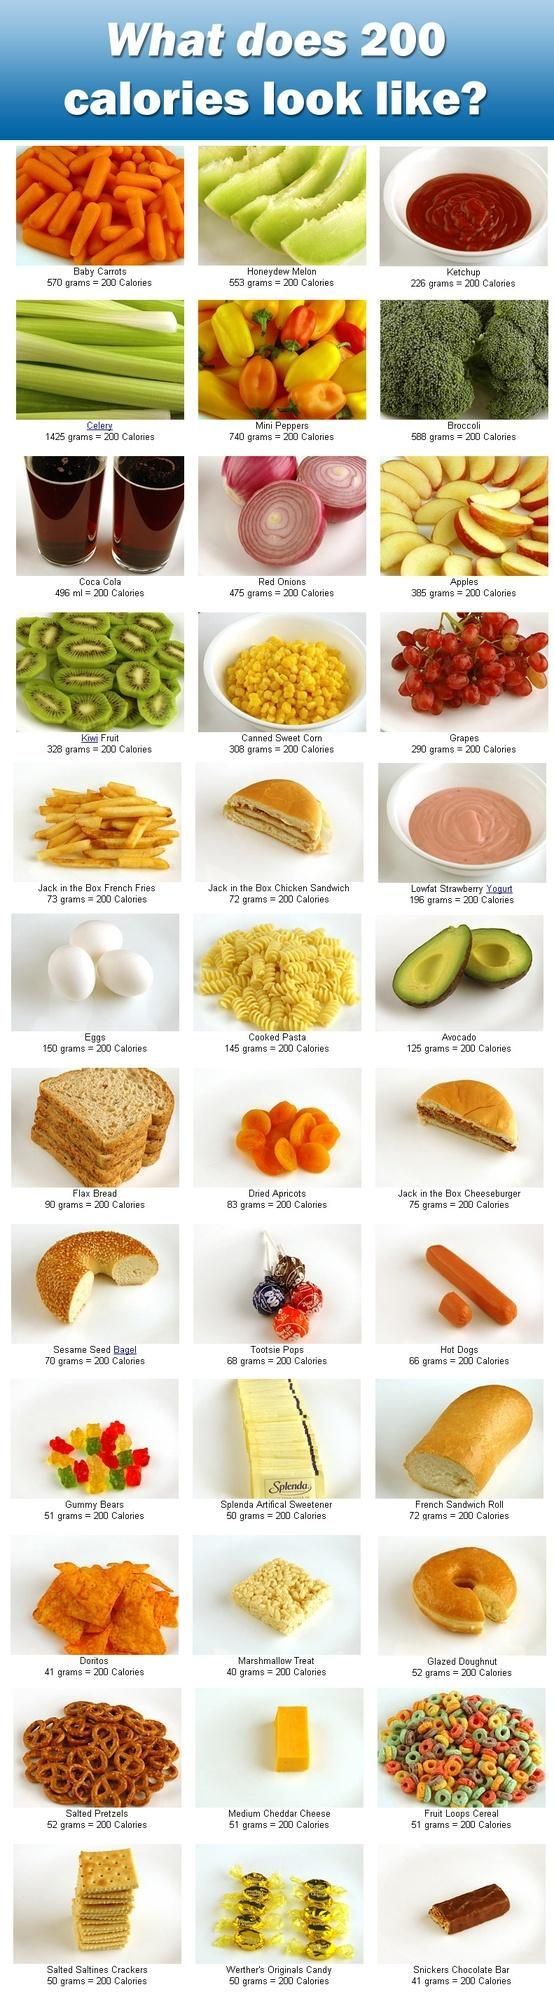 7-Day Diet Meal Plan to Lose Weight: 1,500 Calories